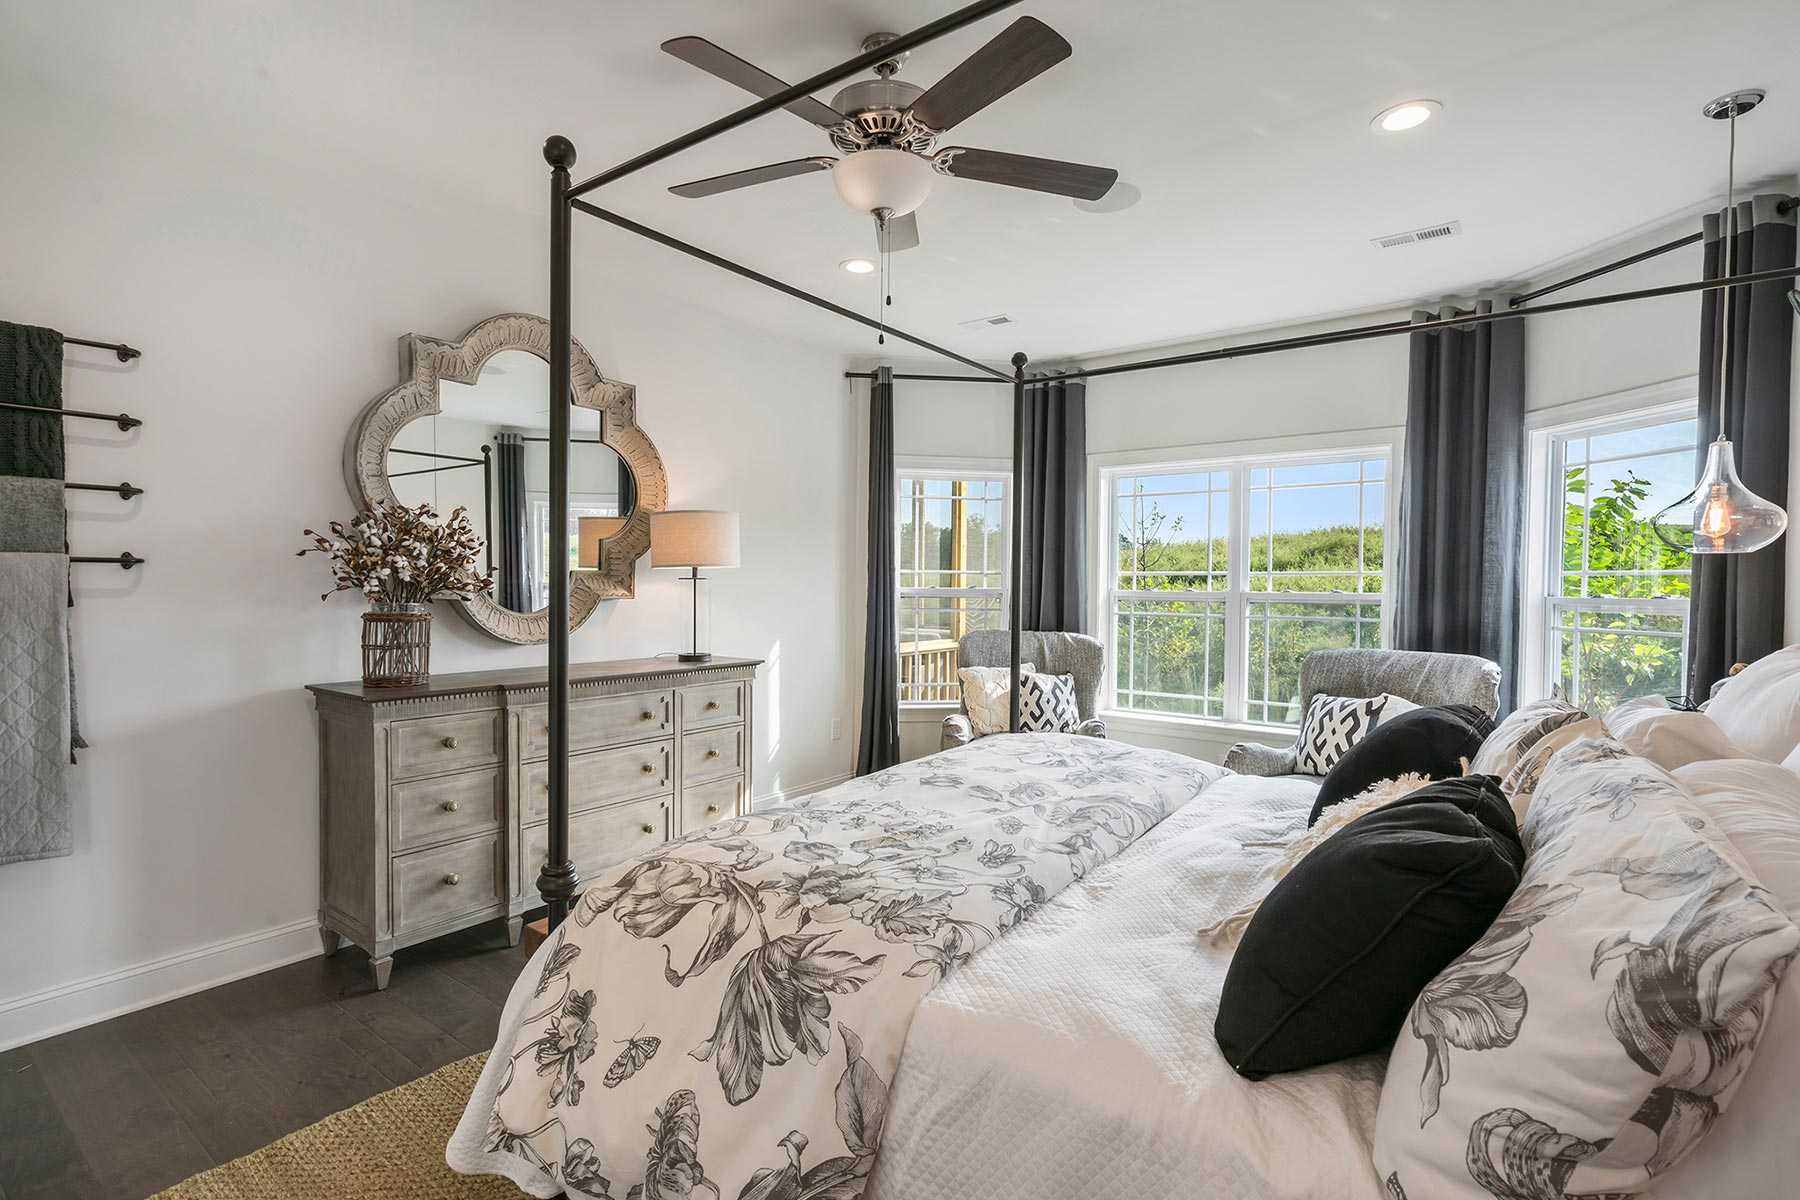 Camden Plan Bedroom at Ballentine Place in Holly Springs North Carolina by Mattamy Homes